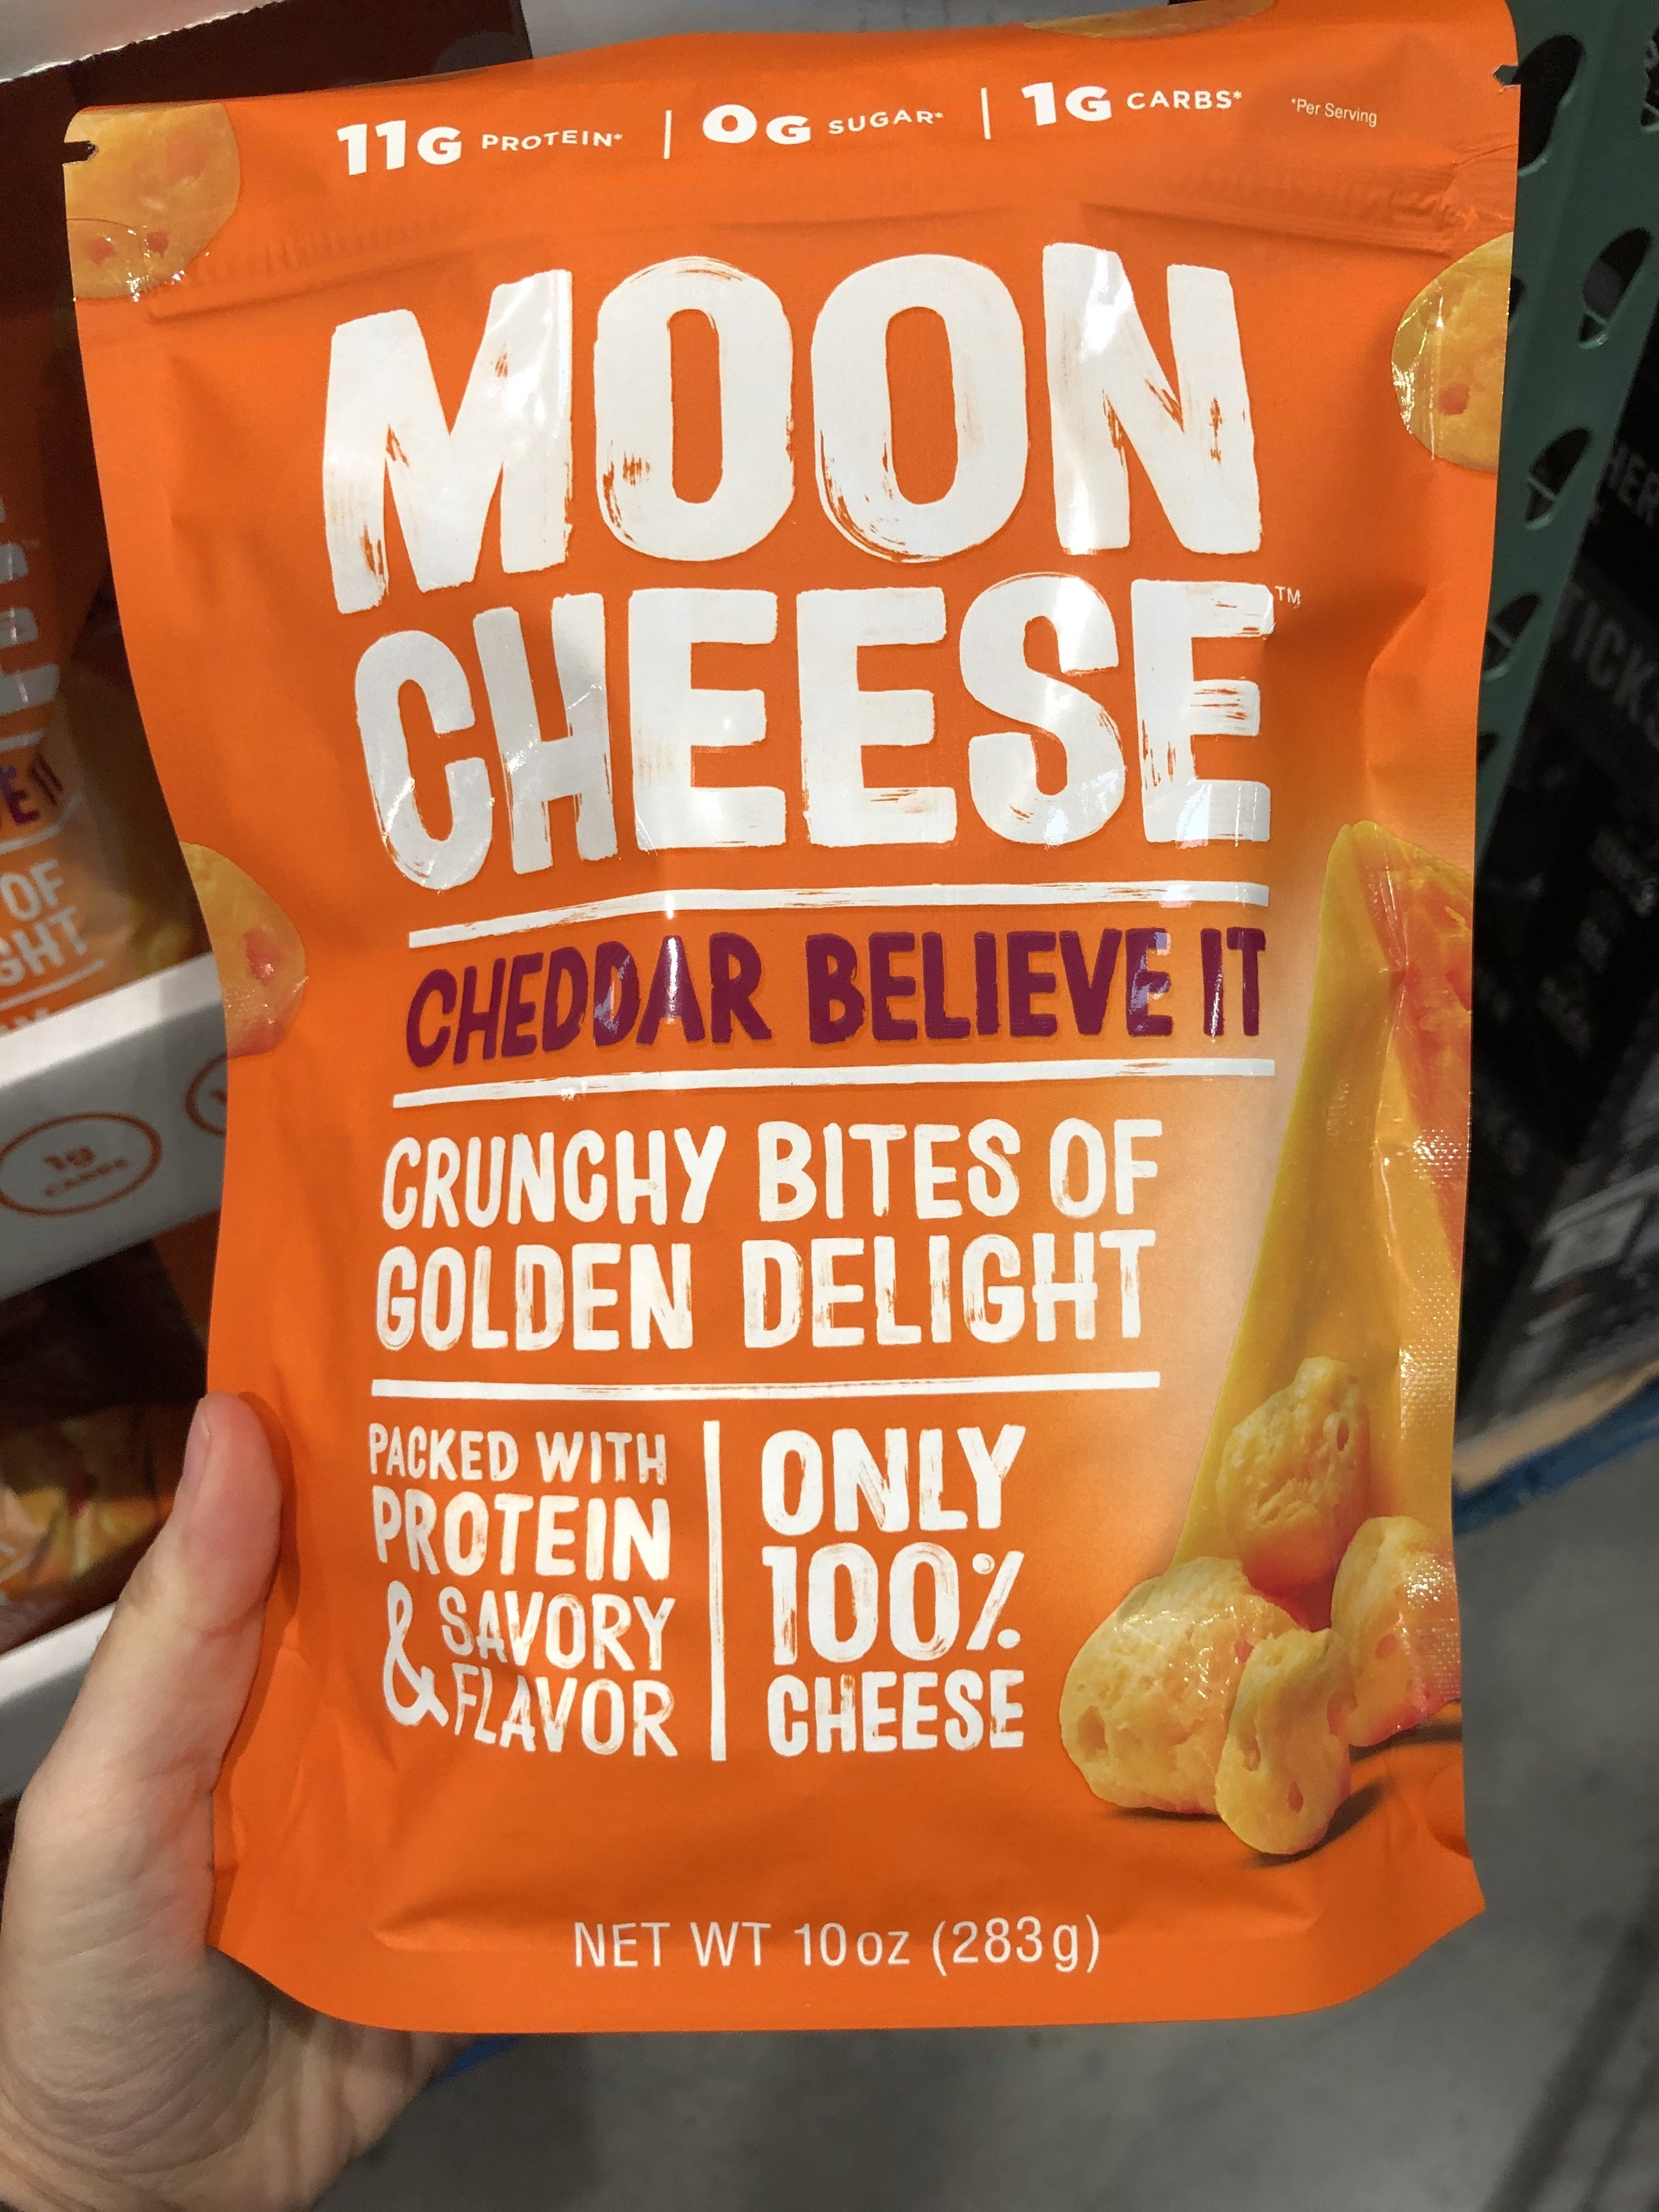 A bag of Moon Cheese